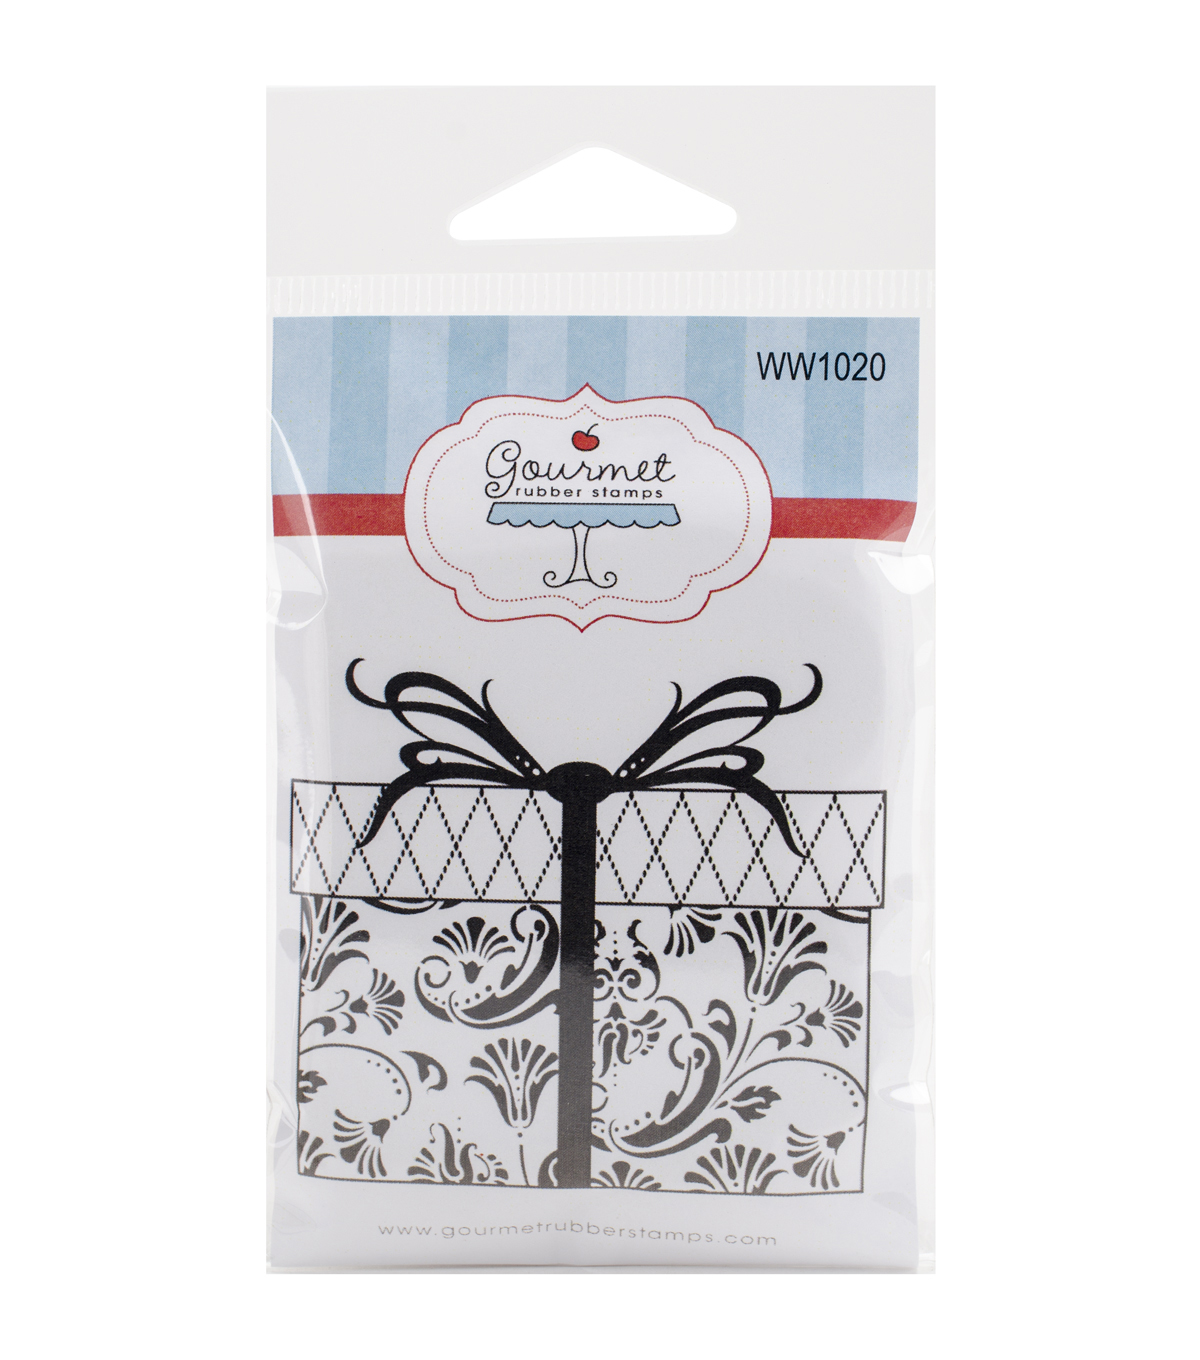 Gourmet Rubber Stamps Cling Stamps-Gift Box